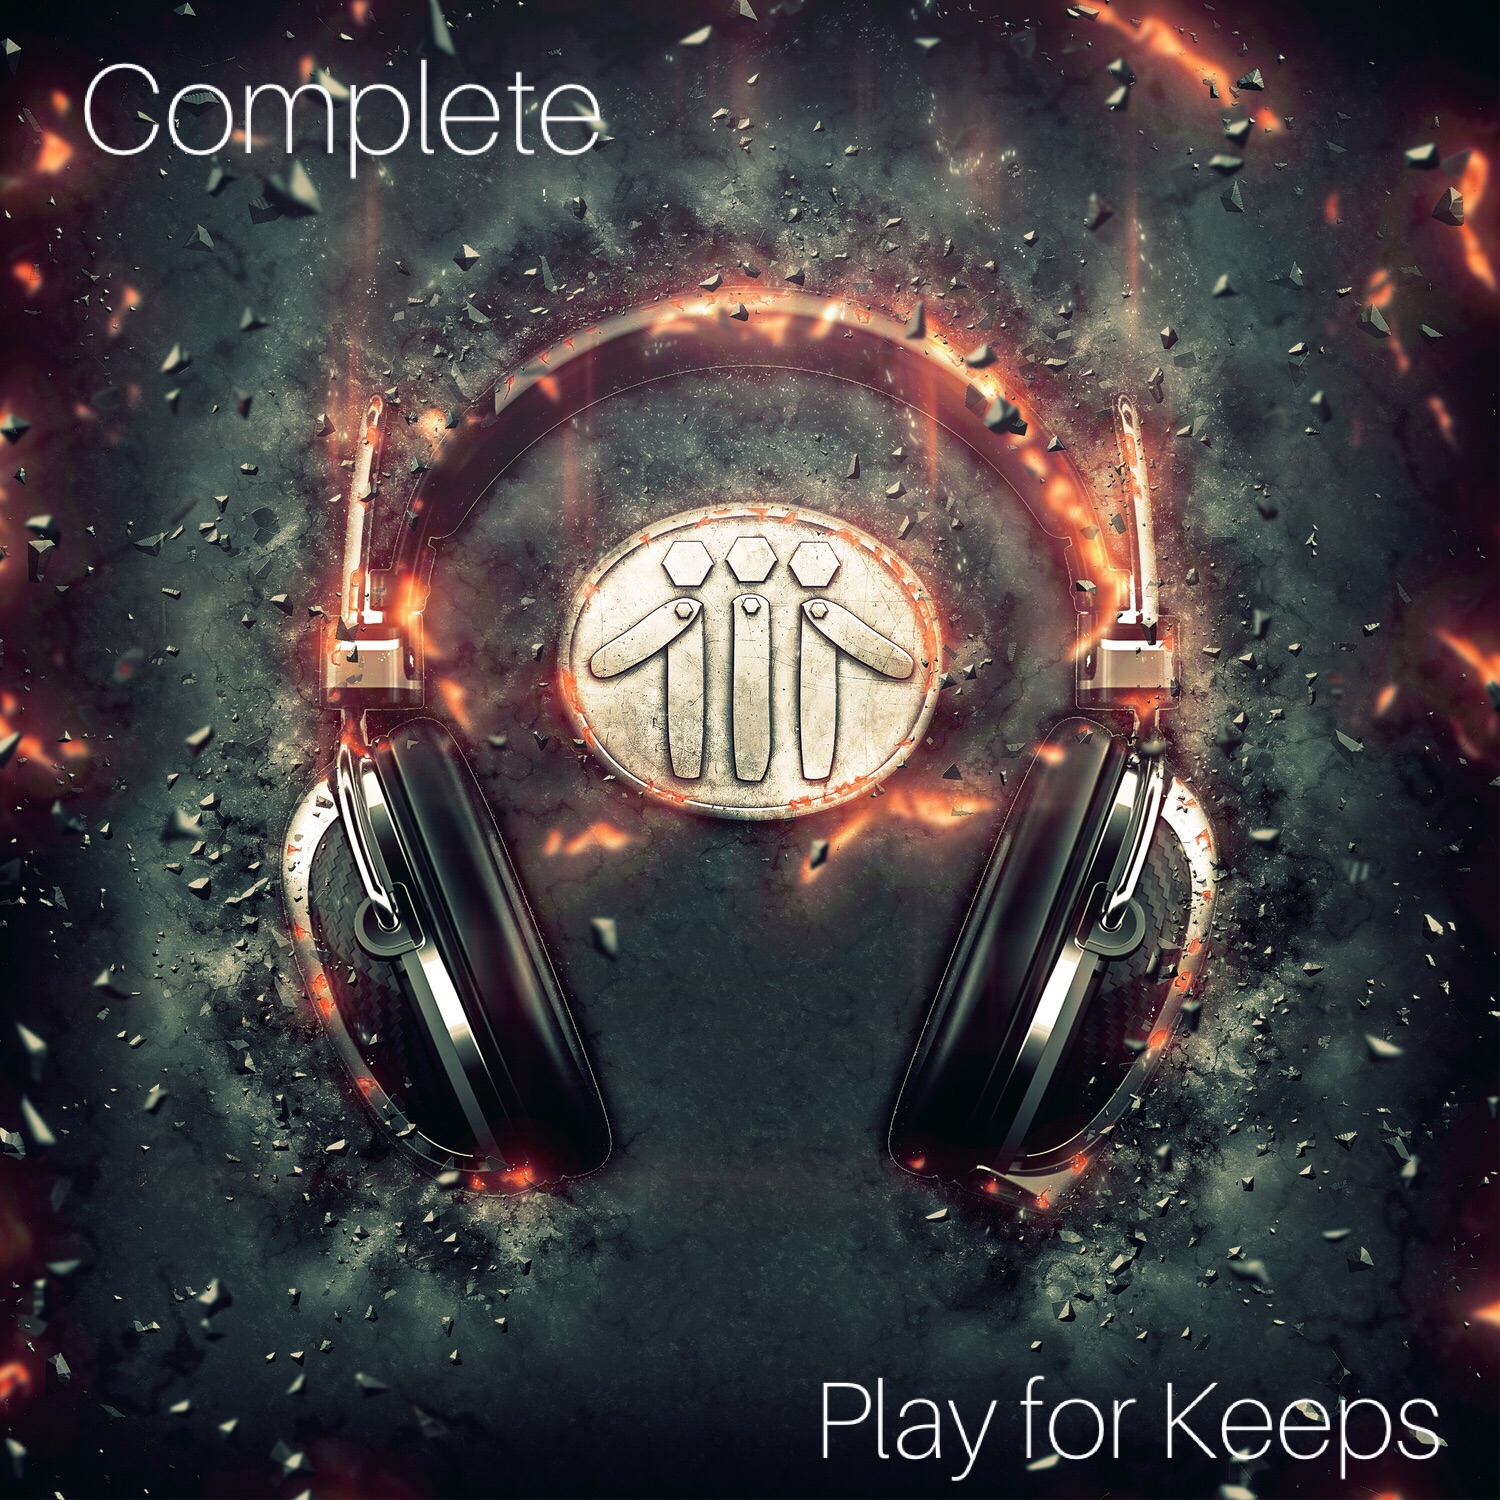 """Check out the new single """"Play for Keeps"""" by Complete on bandcamp and all of the major digital outlets very soon. The track is being added as a bonus to solo album My Three Cents by Complete."""